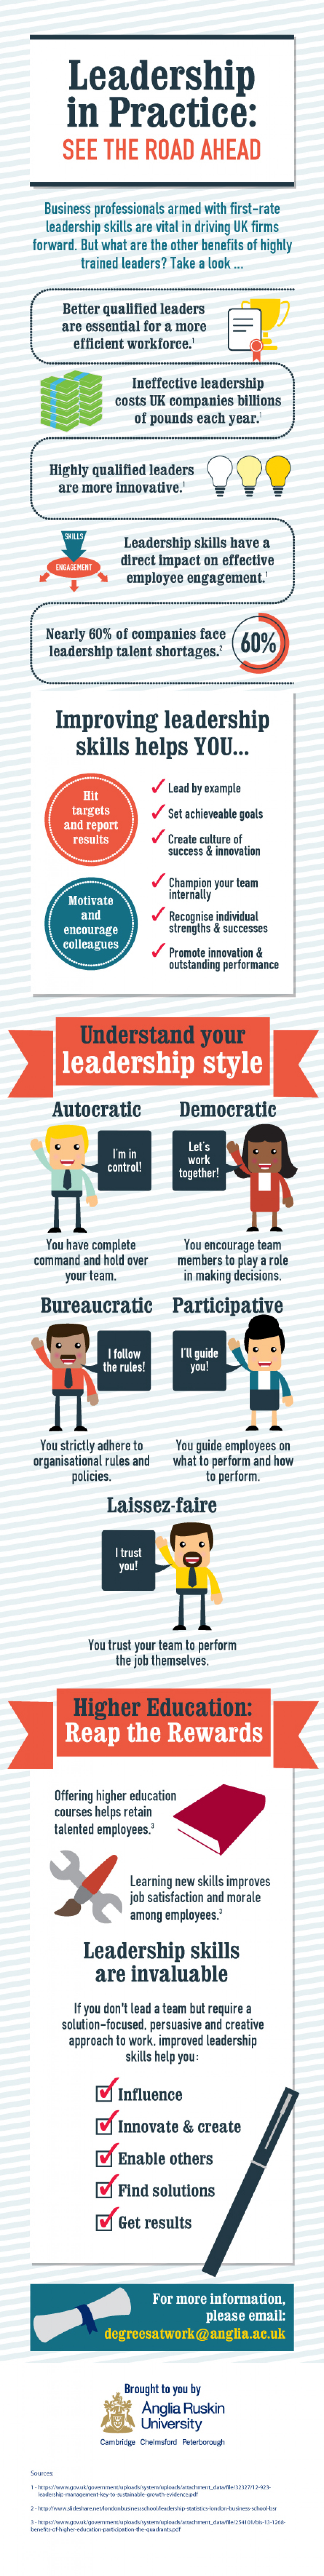 Leadership in Practice Infographic